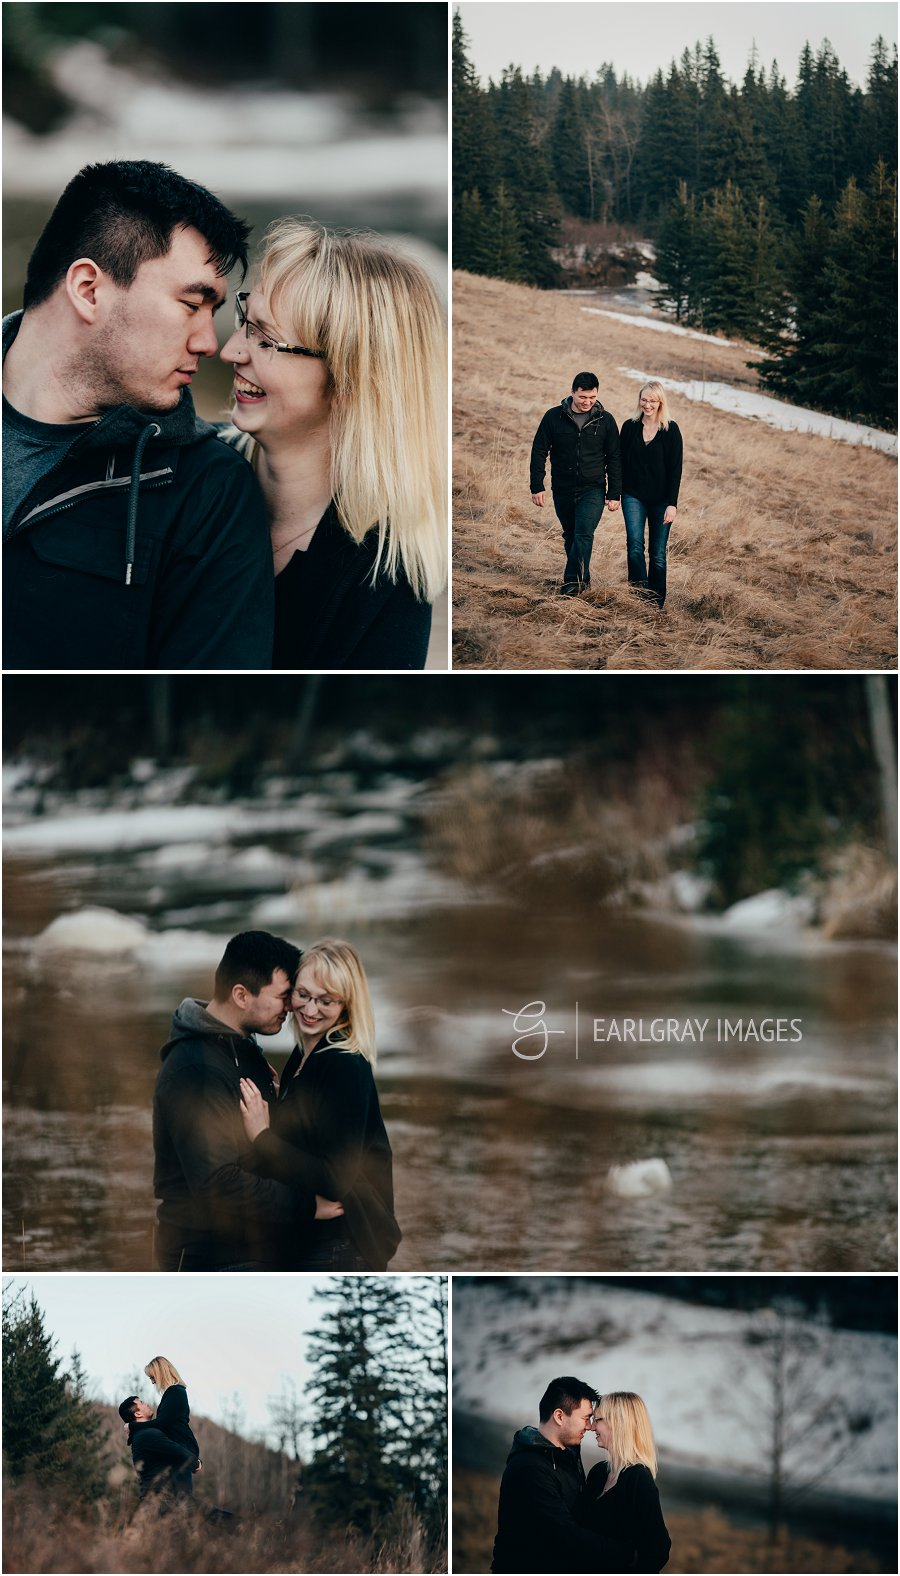 Deployment photography Edmonton; Edmonton romantic photographer; fun Edmonton couples photography session;